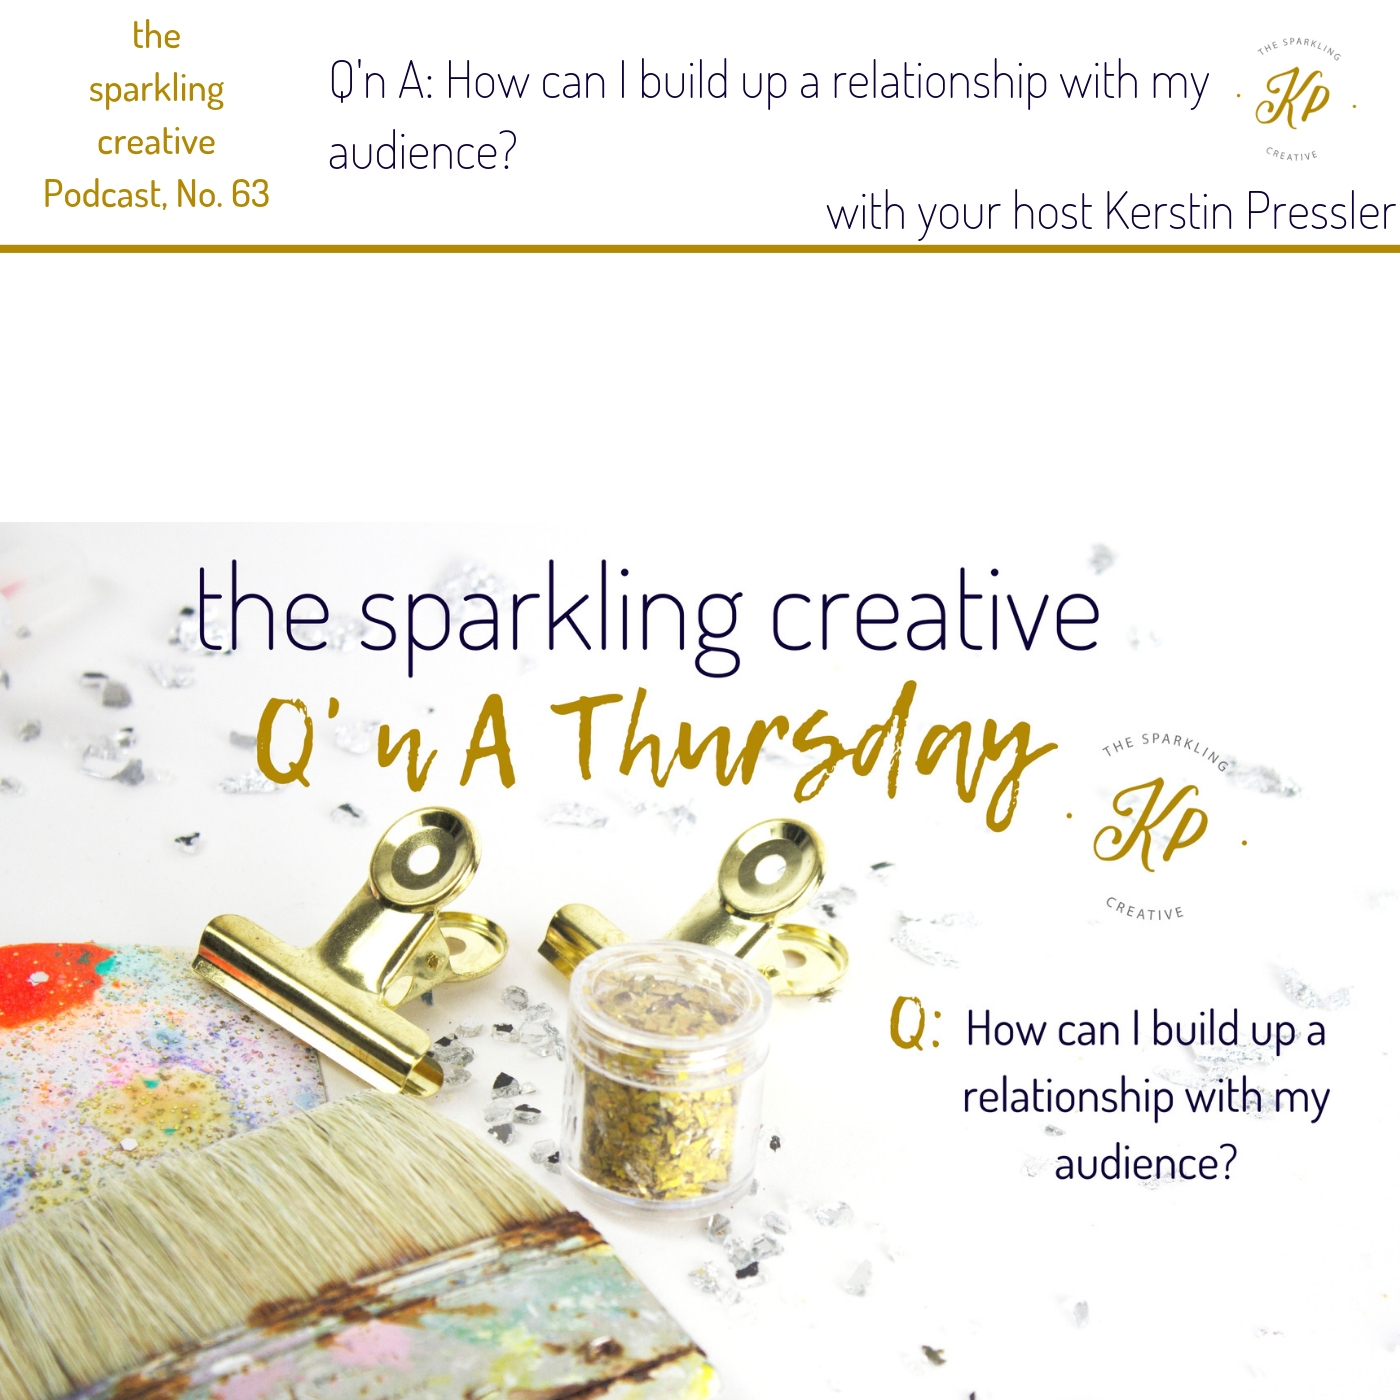 the sparkling creative Podcast, Episode 63: How can I build up a relationship with my audience?, www.kerstinpressler.com/blog-2/episode 63